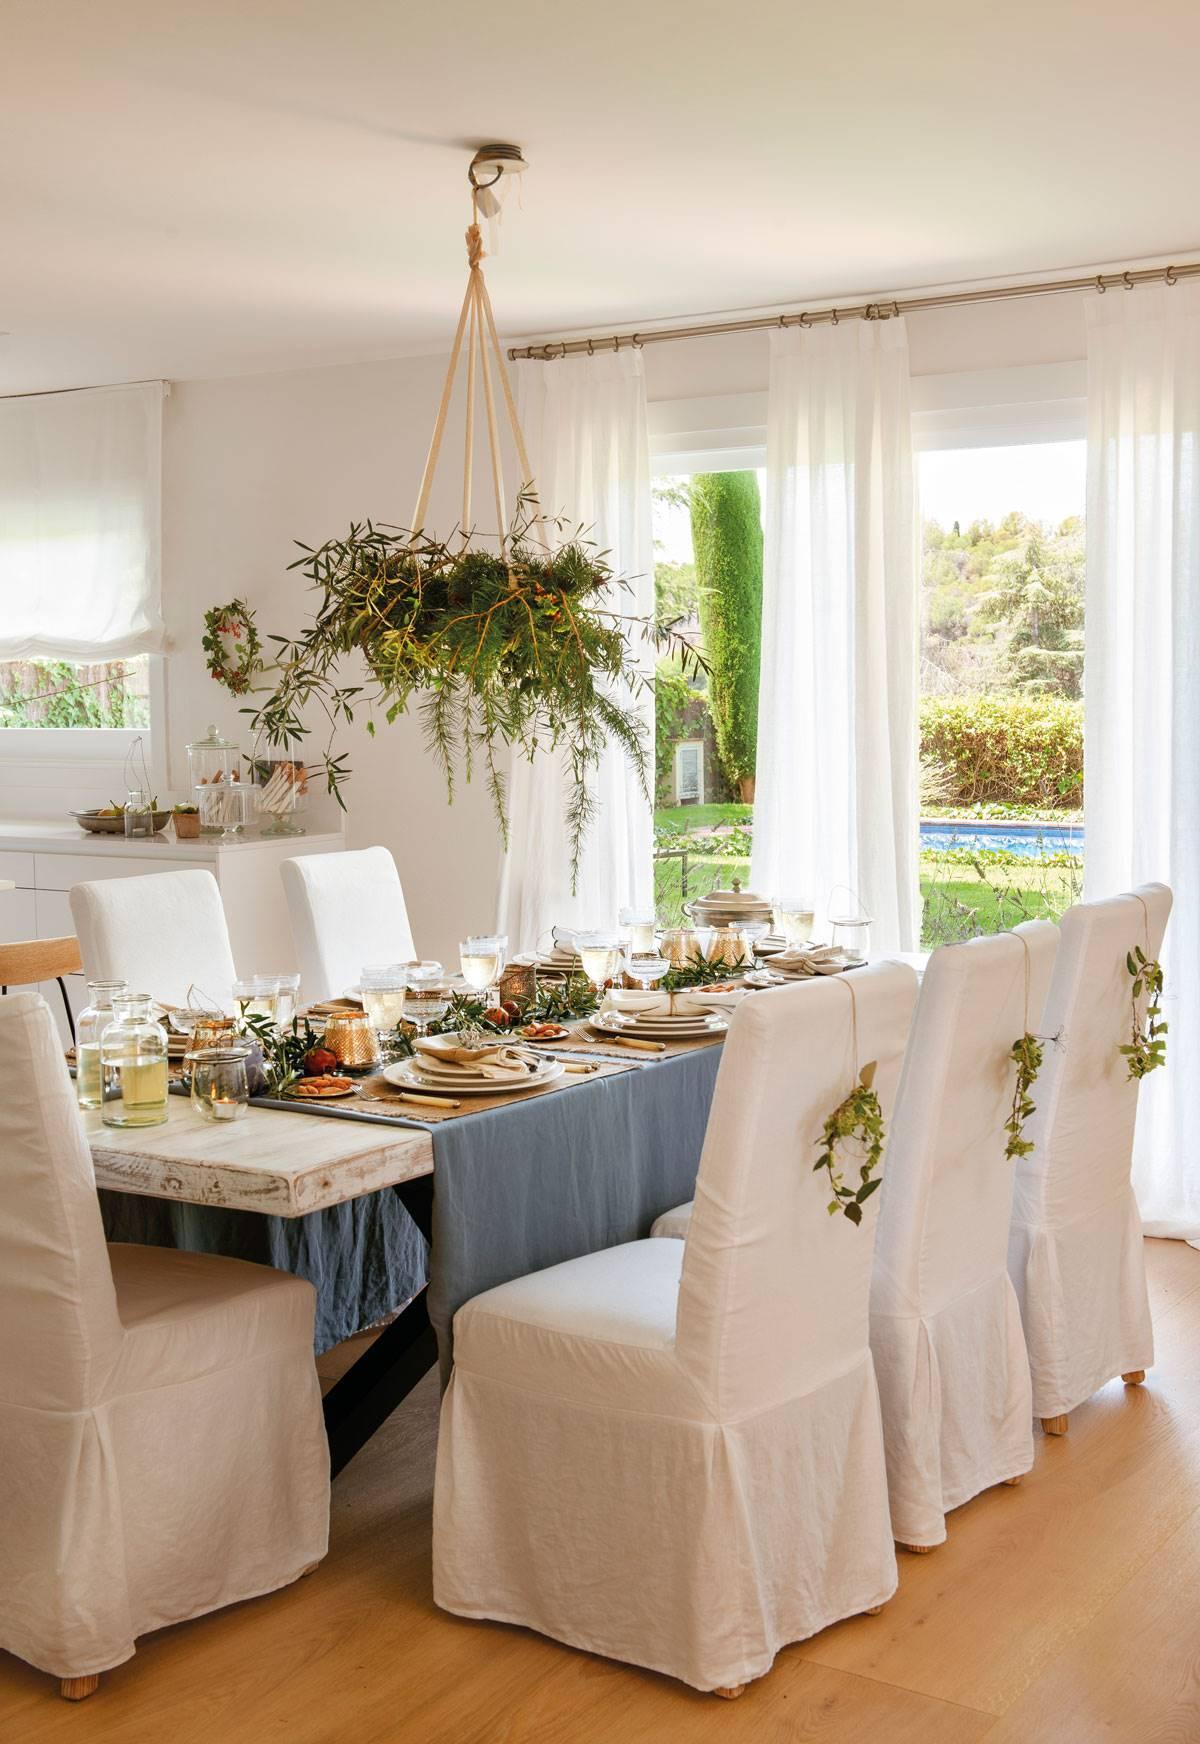 A DISCREET CENTERPIECE WITH OLIVE BRANCHES